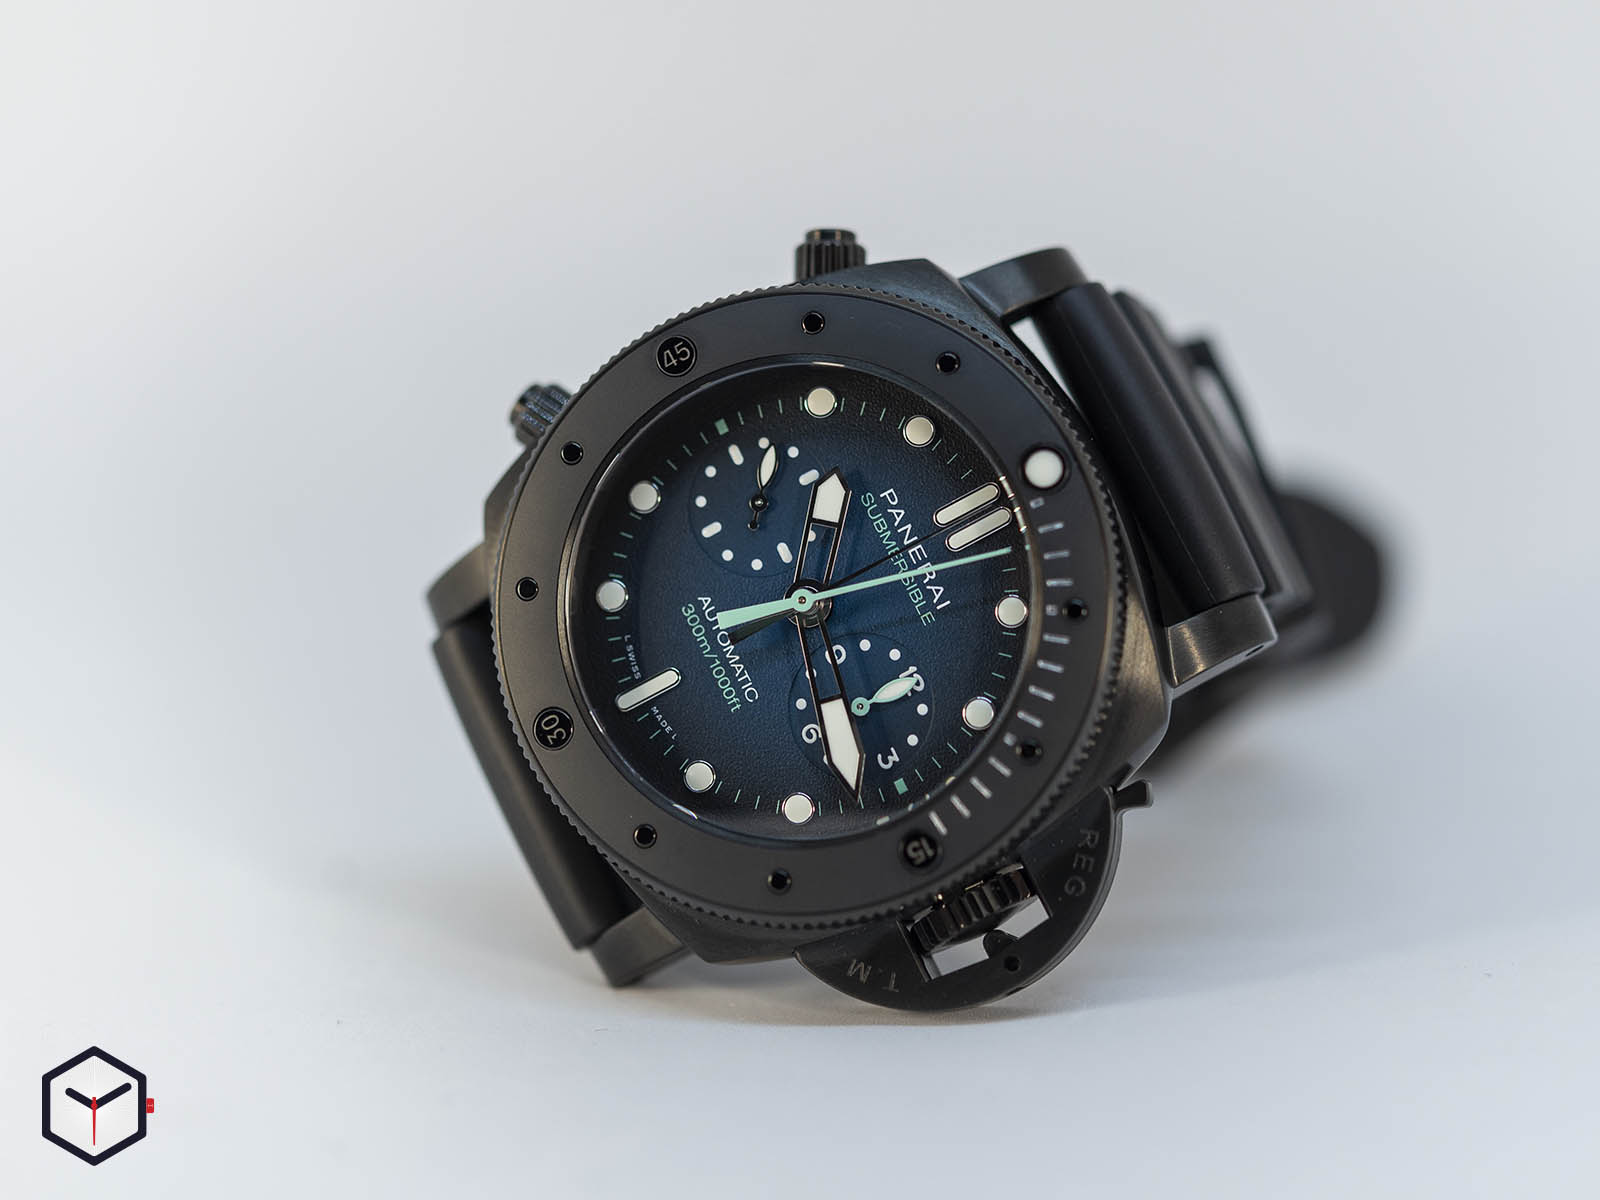 pam00983-officine-panerai-submersible-chrono-guillaume-nery-edition-47mm-sihh-2019-2.jpg